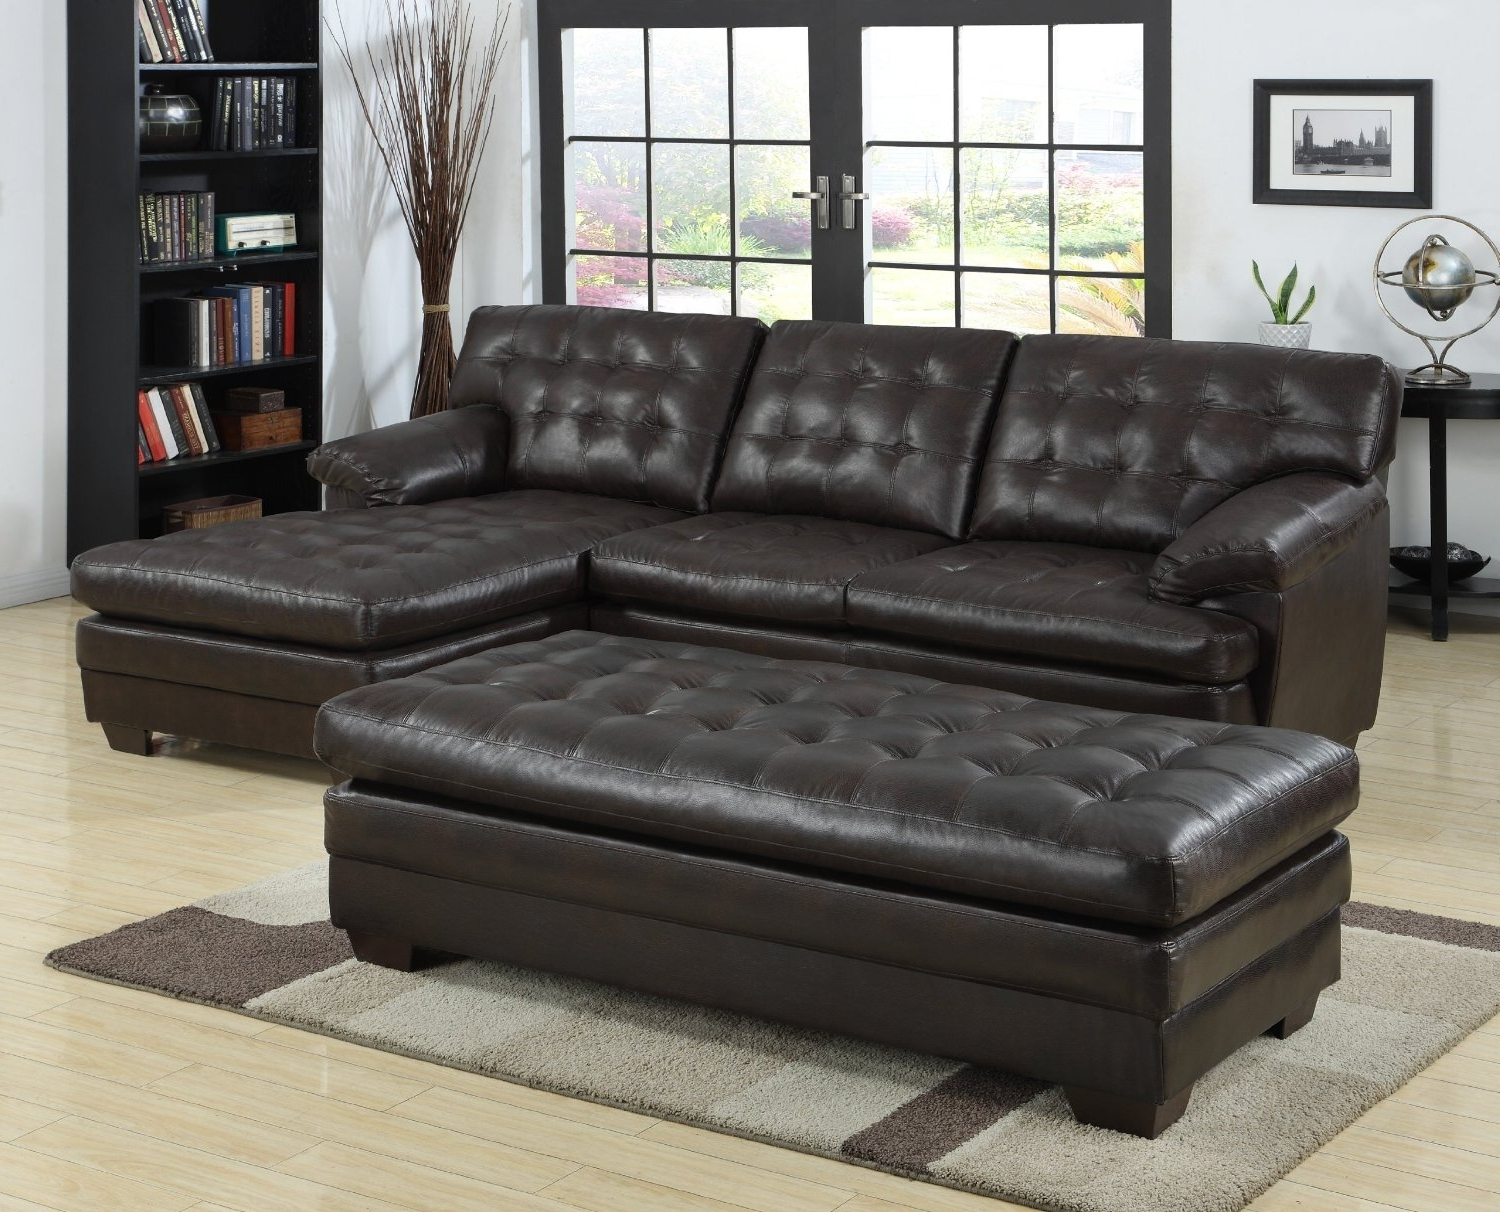 Latest Tufted Sectional Sofas With Chaise With Regard To Black Tufted Leather Sectional Sofa With Chaise And Bench Seat (View 6 of 15)